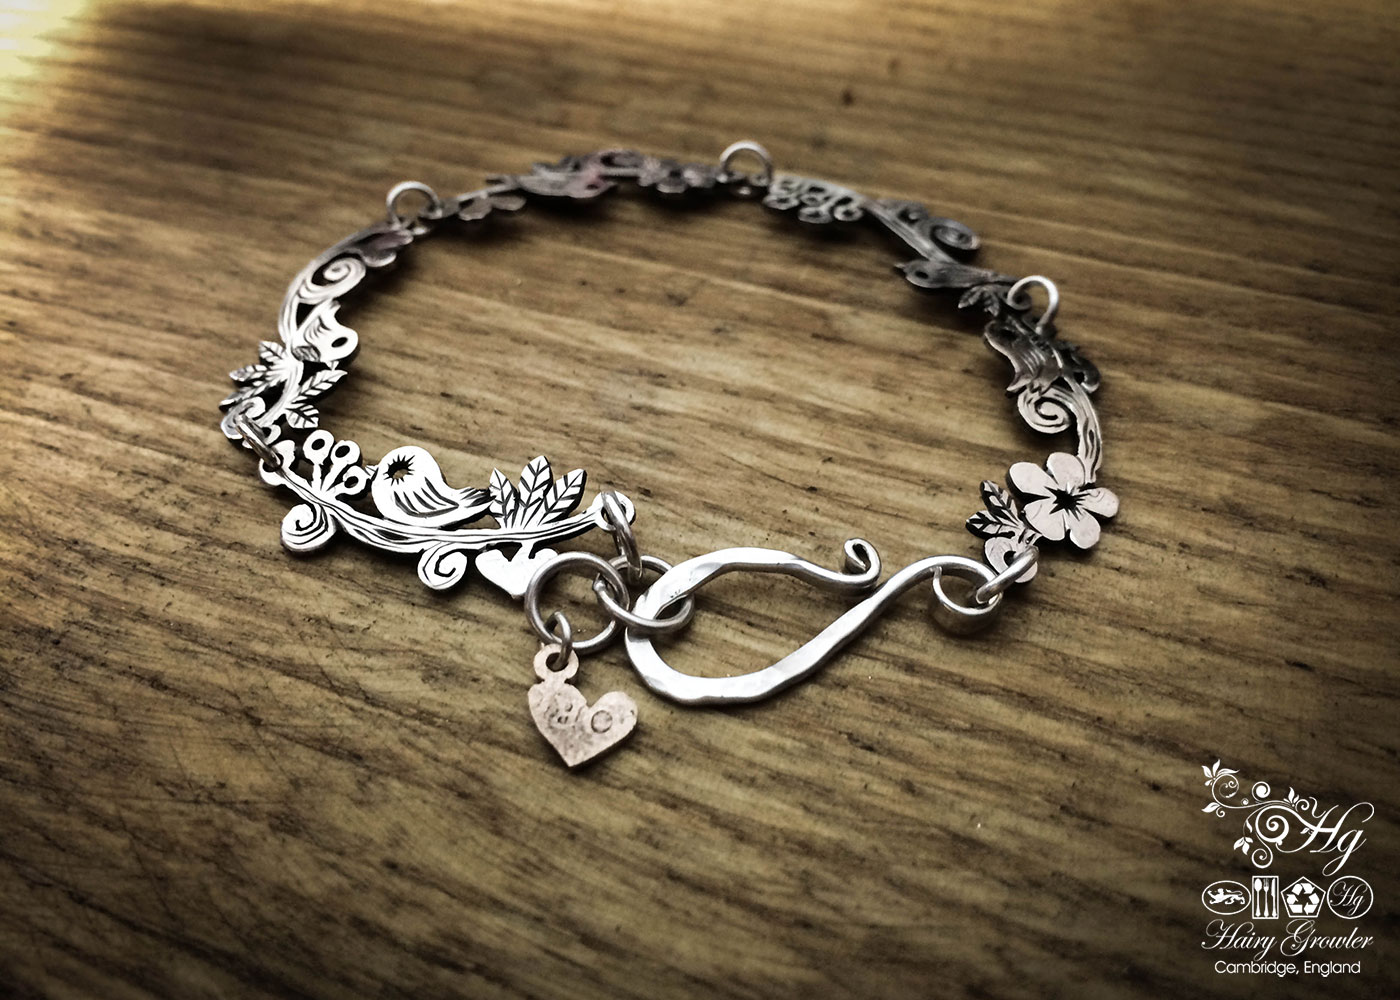 Bird bracelet individually handmade and upcycled from old Victorian silver coins